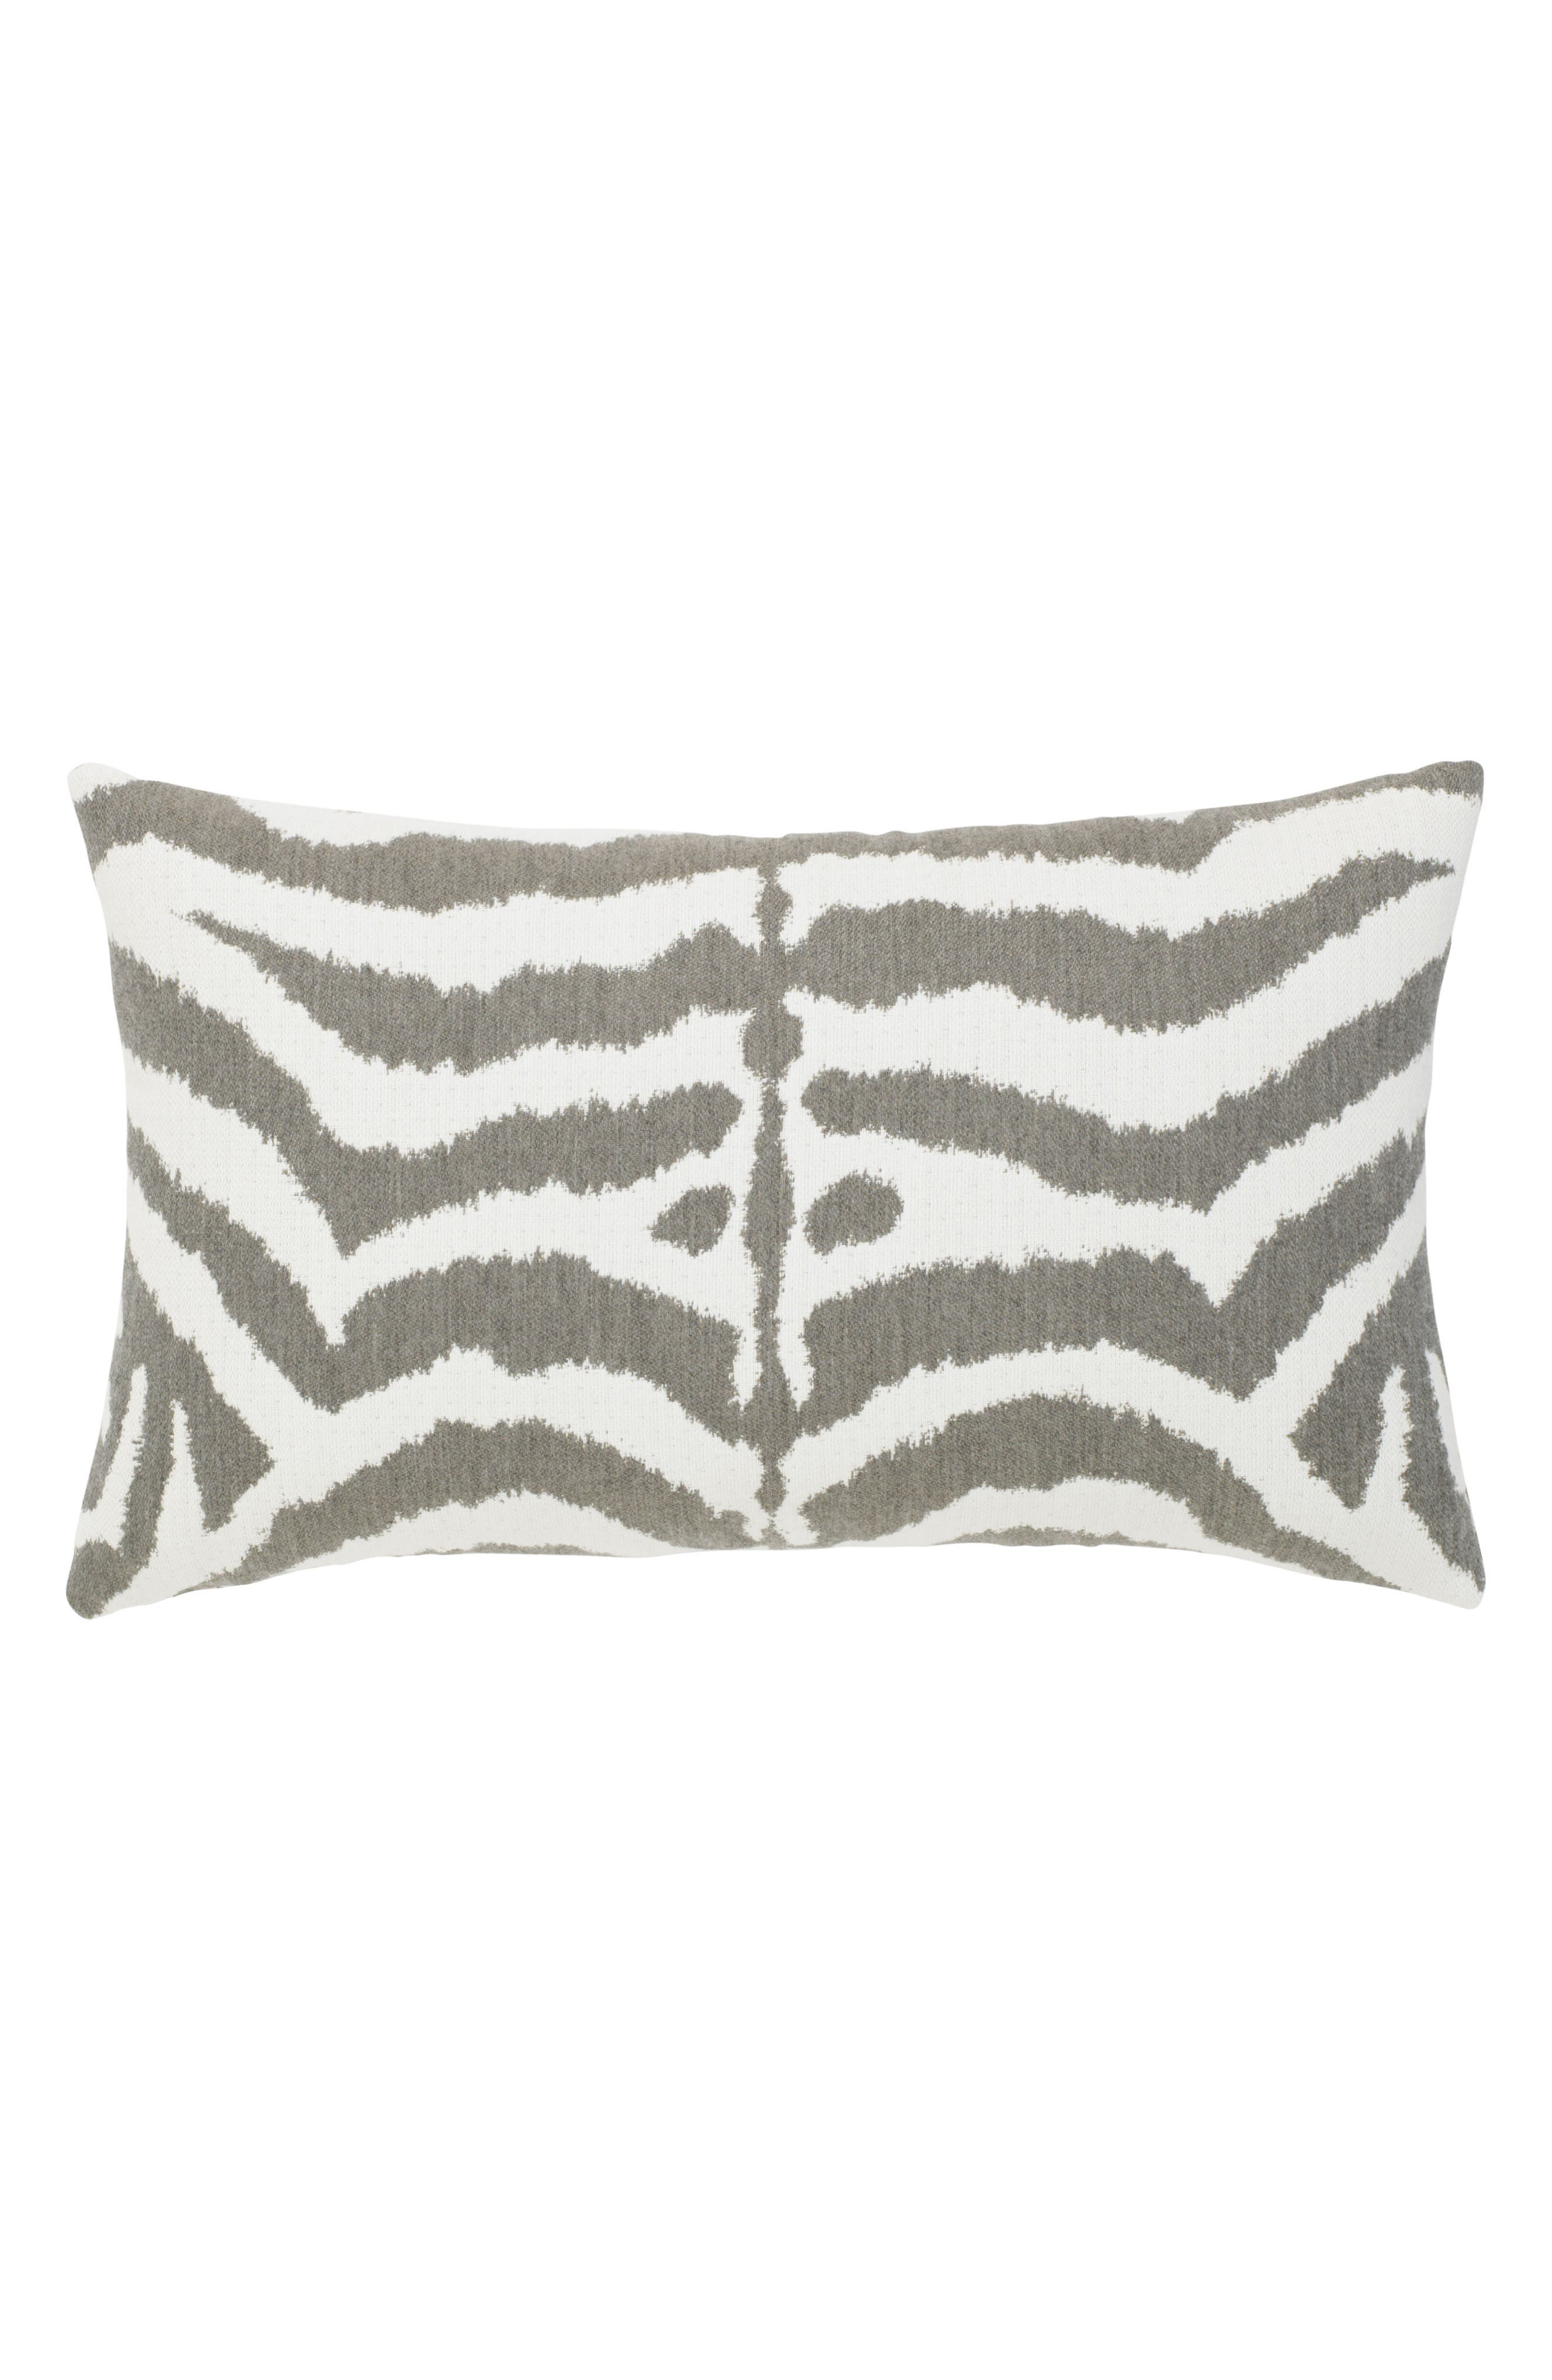 Zebra Gray Indoor/Outdoor Accent Pillow,                             Main thumbnail 1, color,                             Gray White